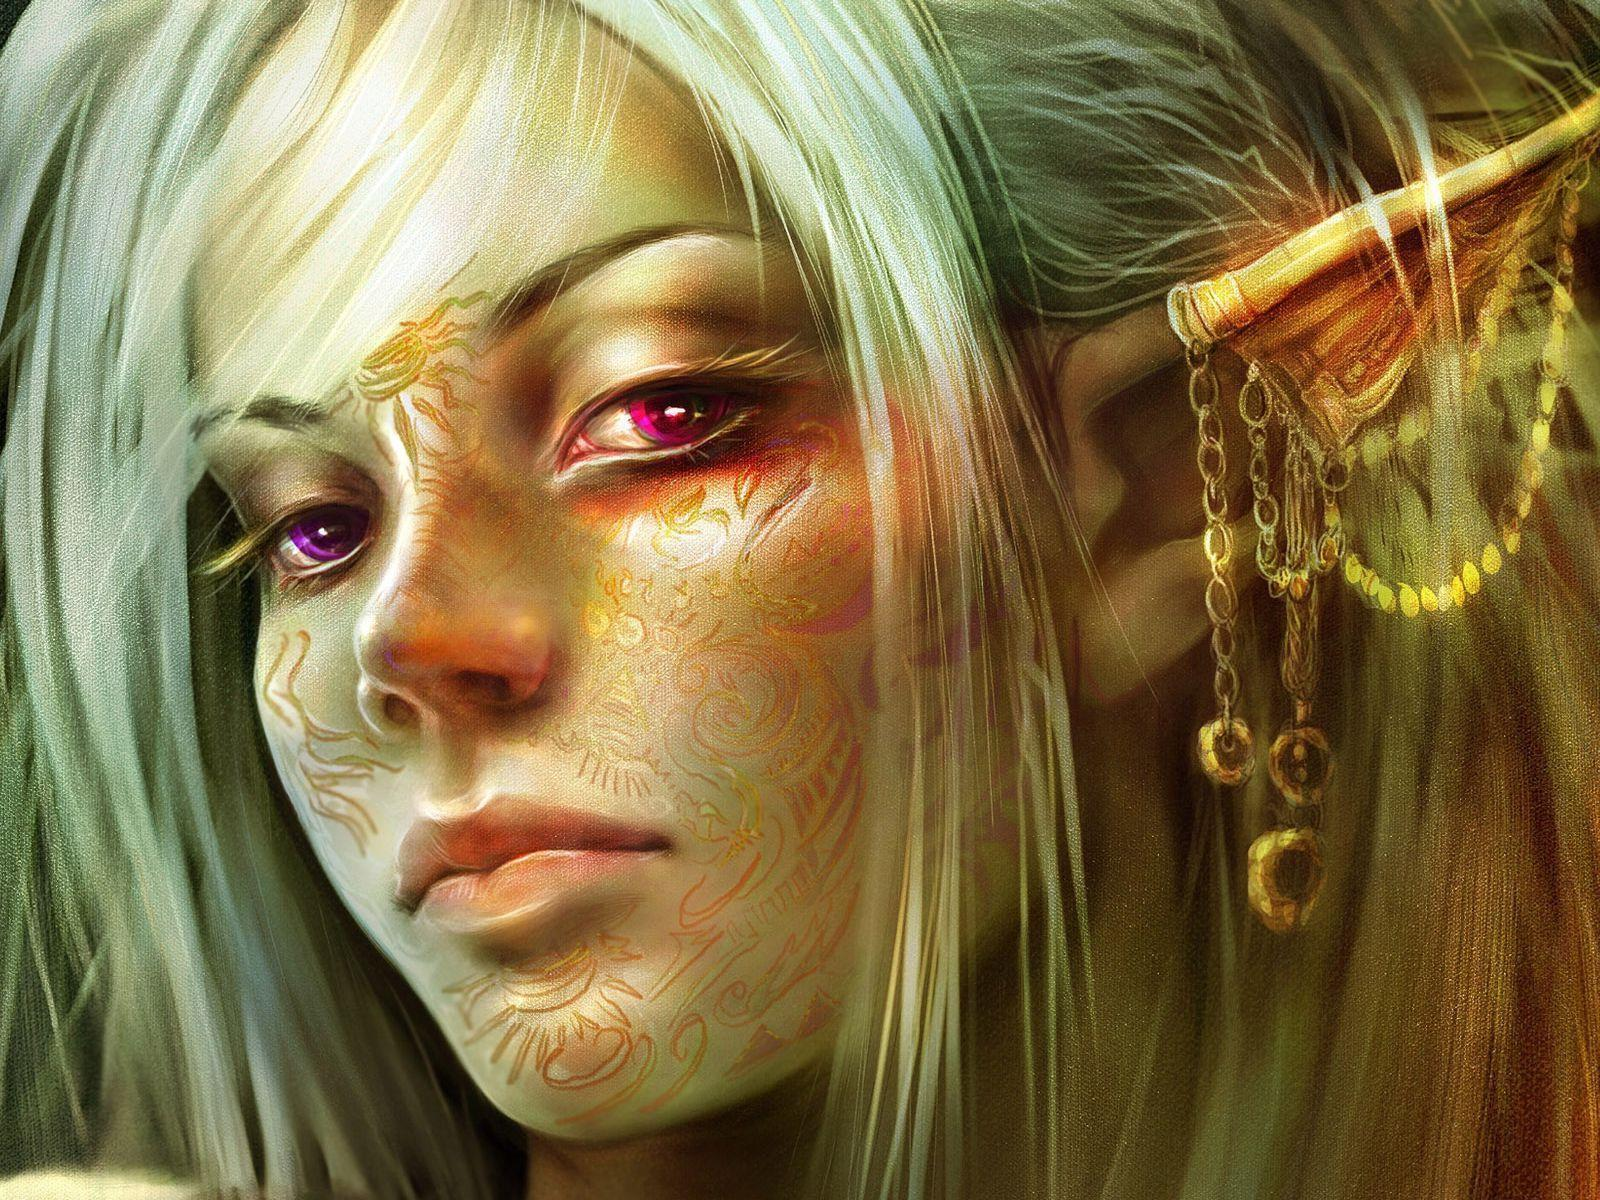 fantasy_elf_person_face_ear_hair_abstract_hd-wallpaper-1334707.jpg